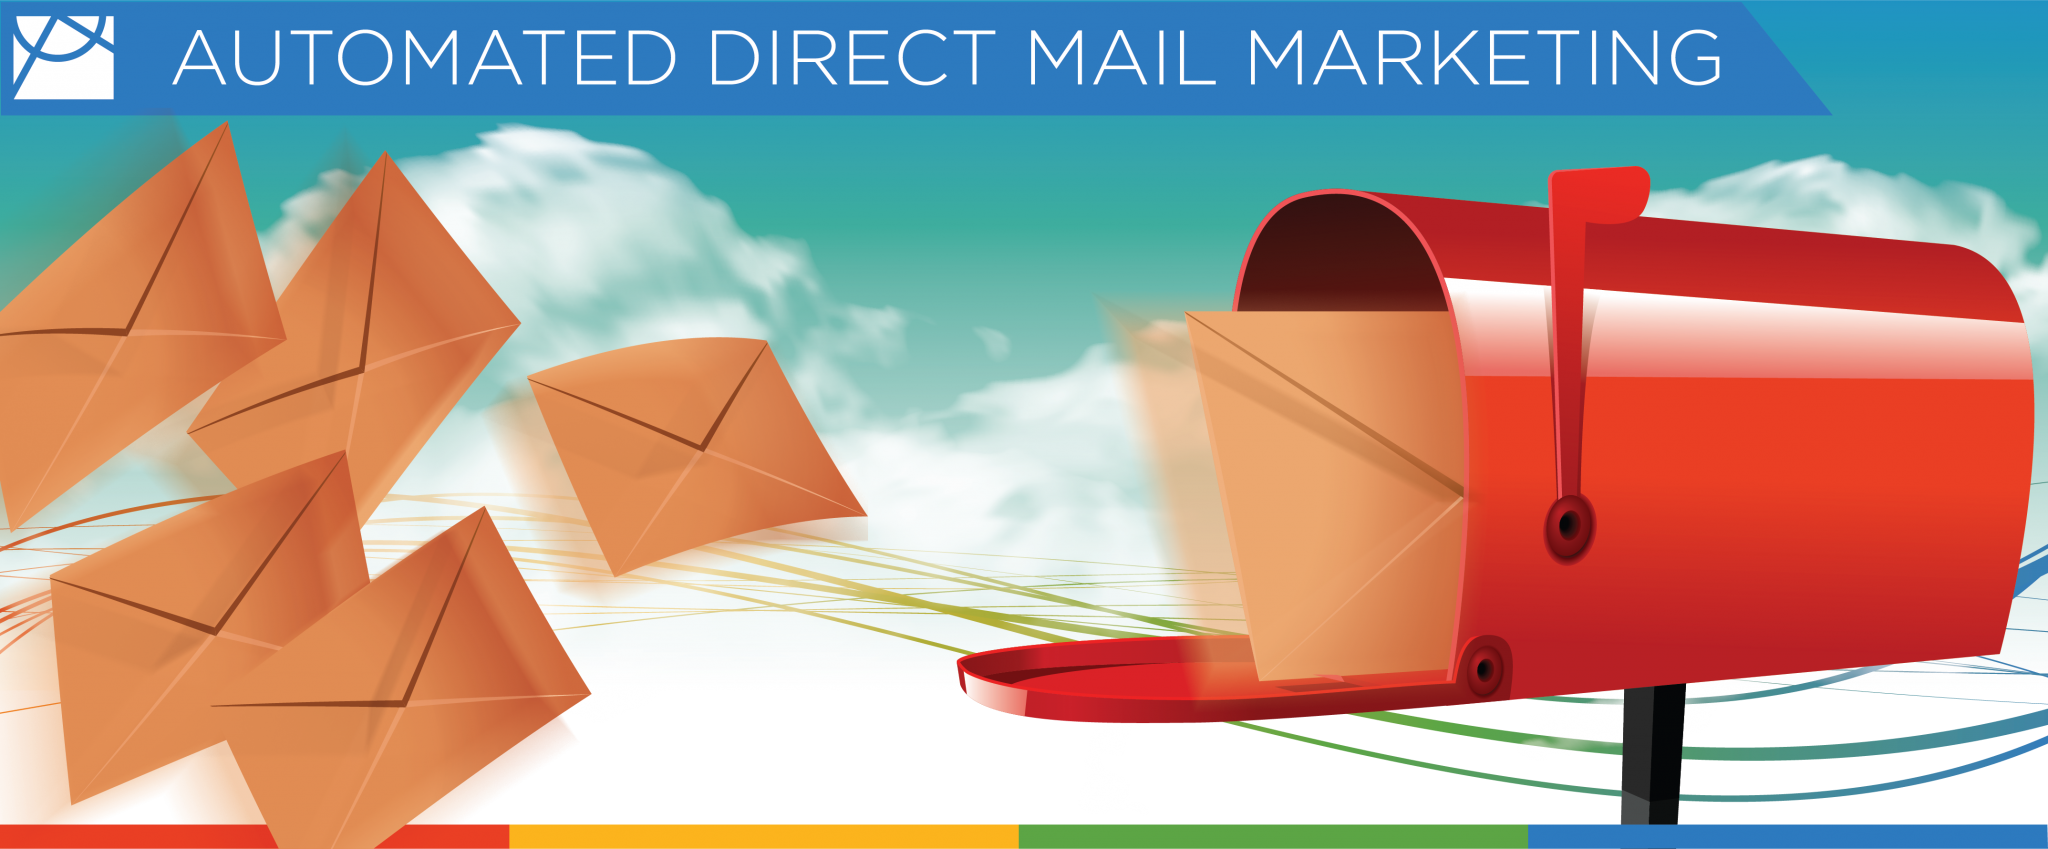 Automated Direct Mail Marketing